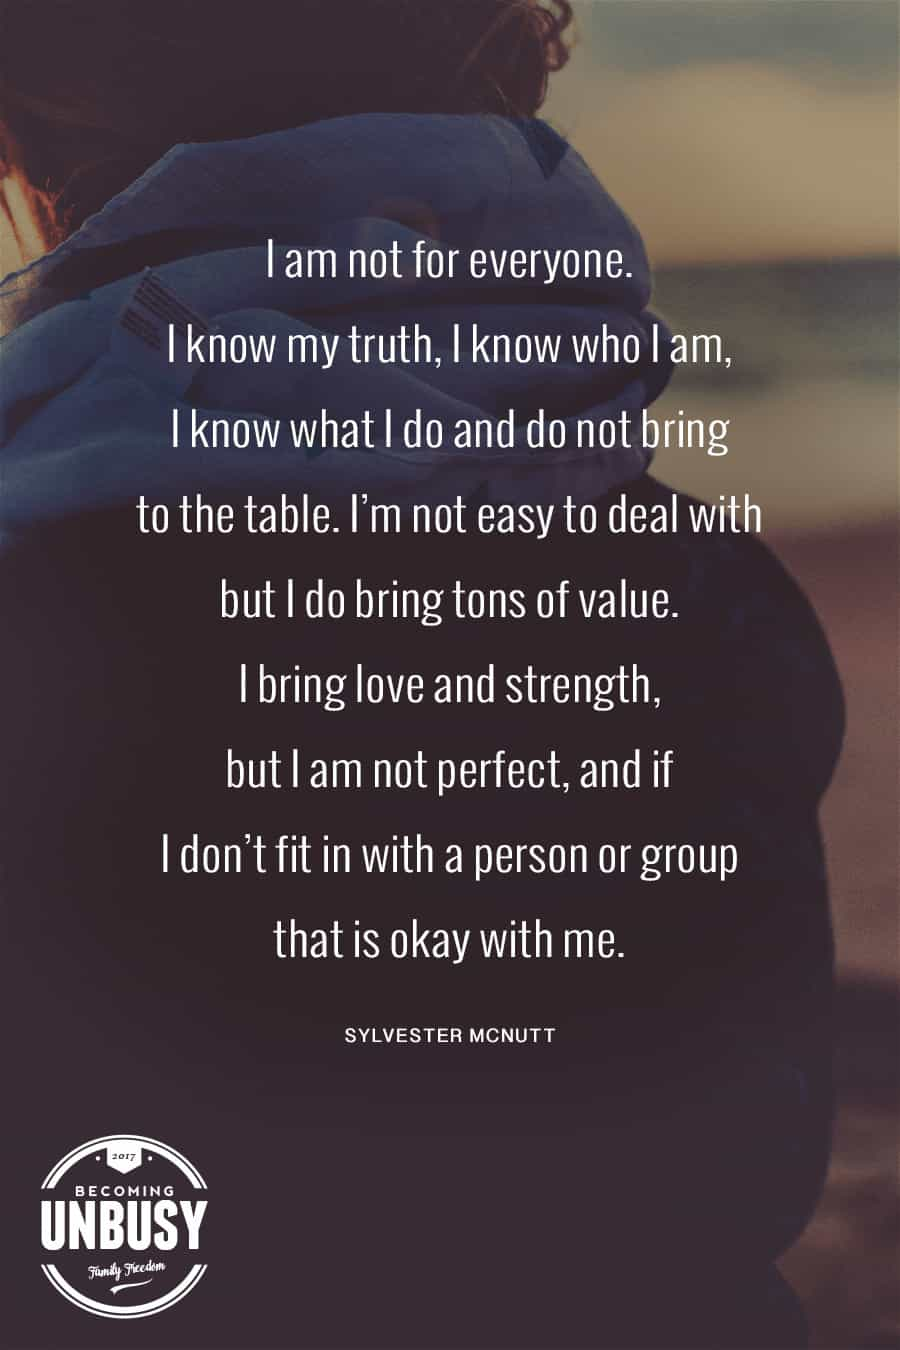 I am not for everyone. I know my truth, I know who I am, I know what I do and do not bring to the table. I'm not easy to deal with but I do bring tons of value. I bring love and strength, but I am not perfect, and if I don't fit in with a person or group that is okay with me. #poems #lifequotes #poetry *Loving this collection of 12 Poems About Life For a Beautiful Life Well-Lived